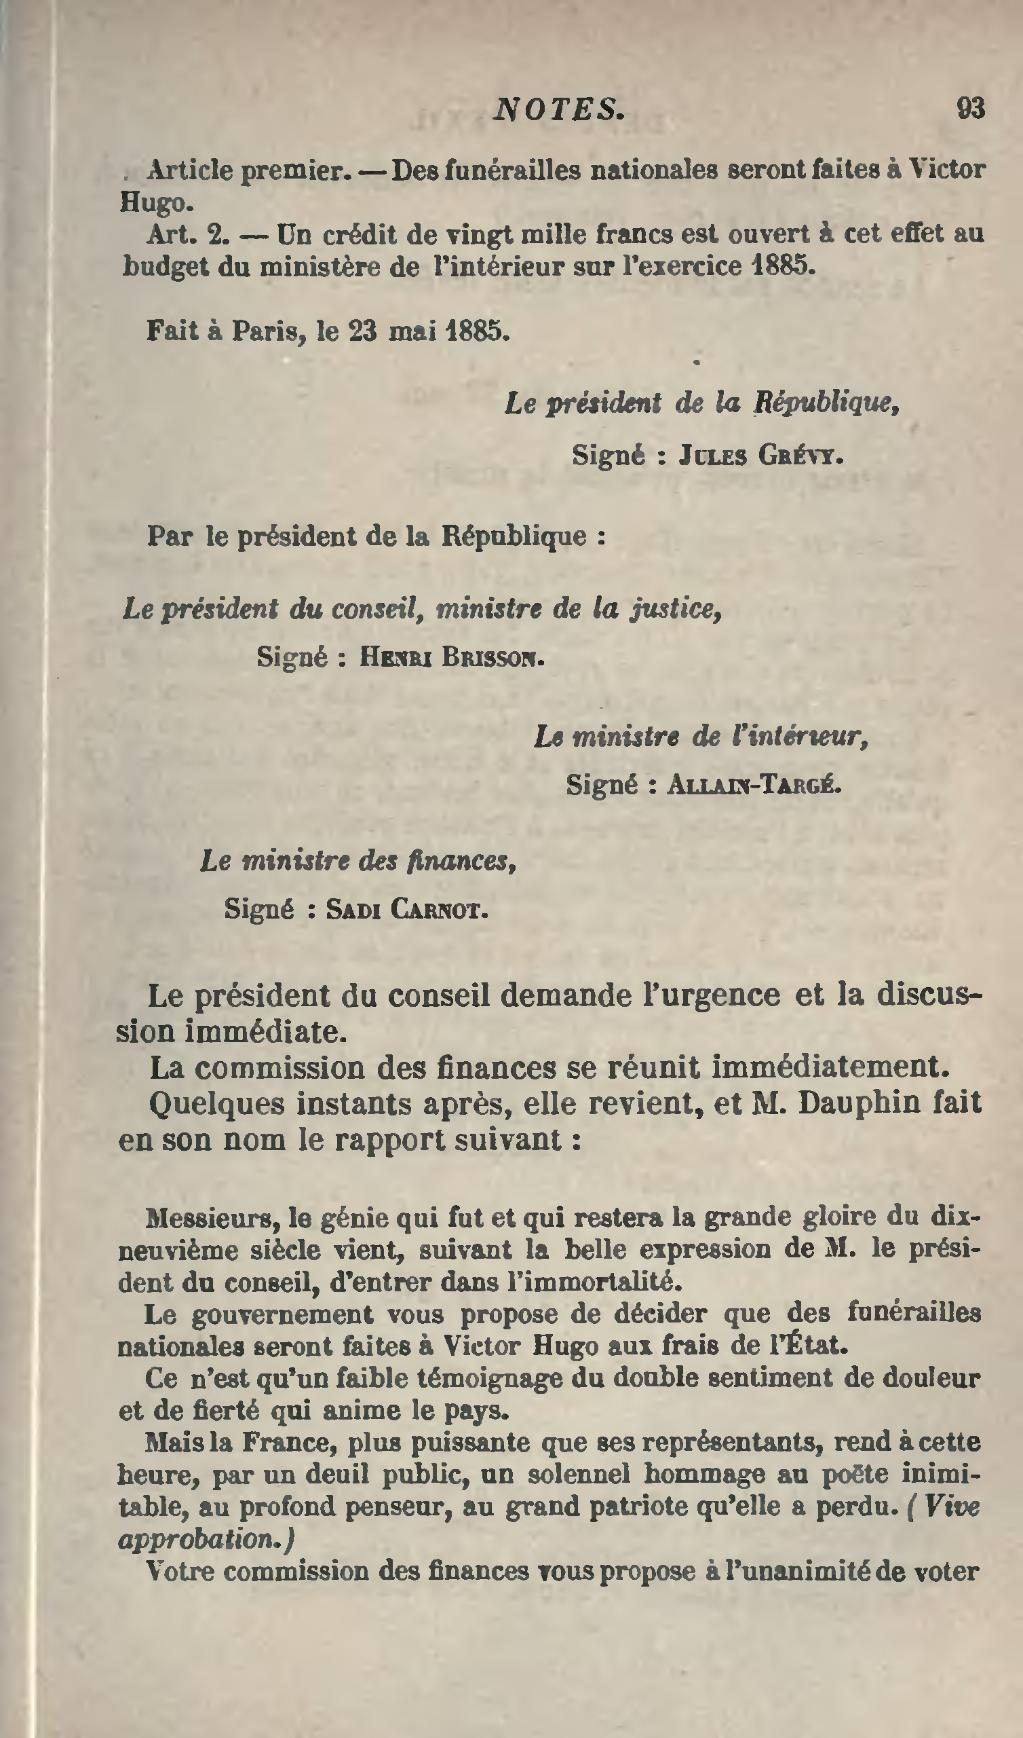 Budget Ministere Interieur Page Hugo Actes Et Paroles Volume 8 Djvu 103 Wikisource